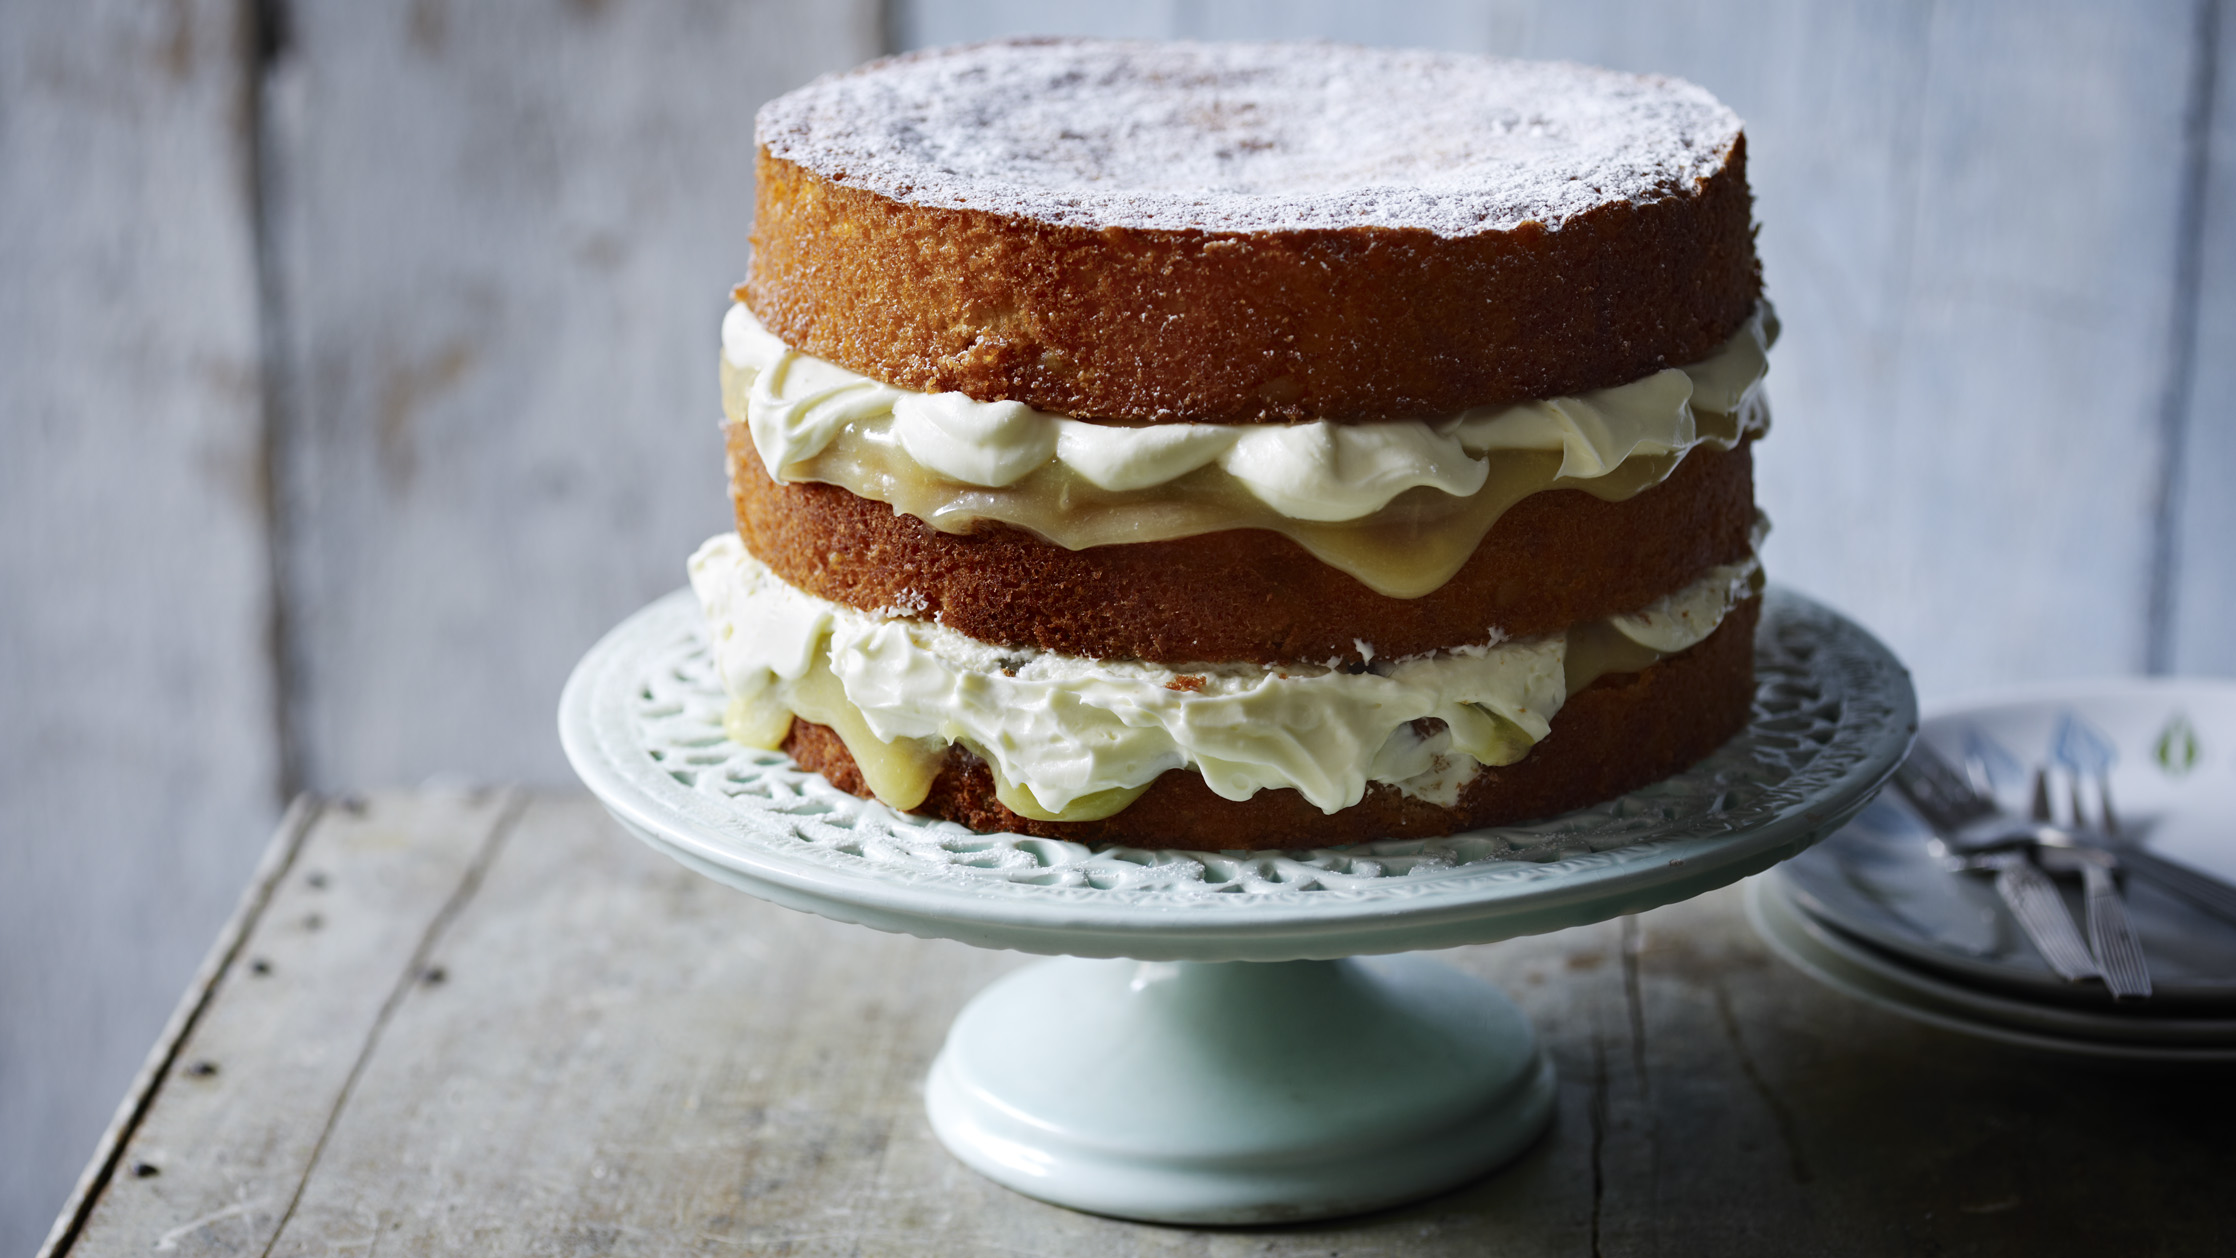 Carrot Cake Recipe Uk Bbc: Bbc Food Recipe For Lemon Drizzle Cake